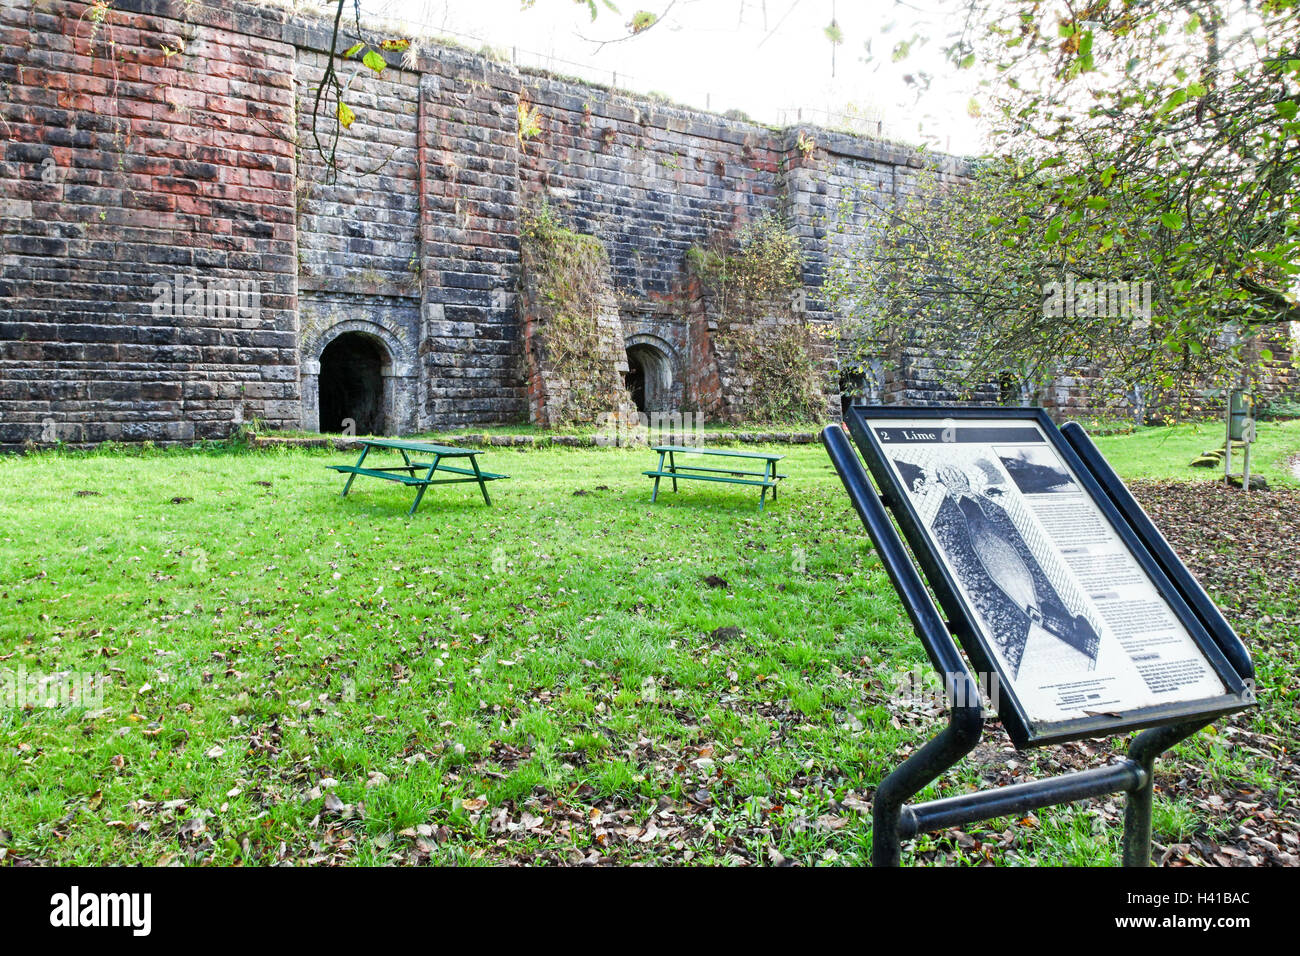 The lime kilns at Froghall Wharf Caldon Canal Froghall Stoke-on-Trent Staffordshire Staffs England  UK - Stock Image